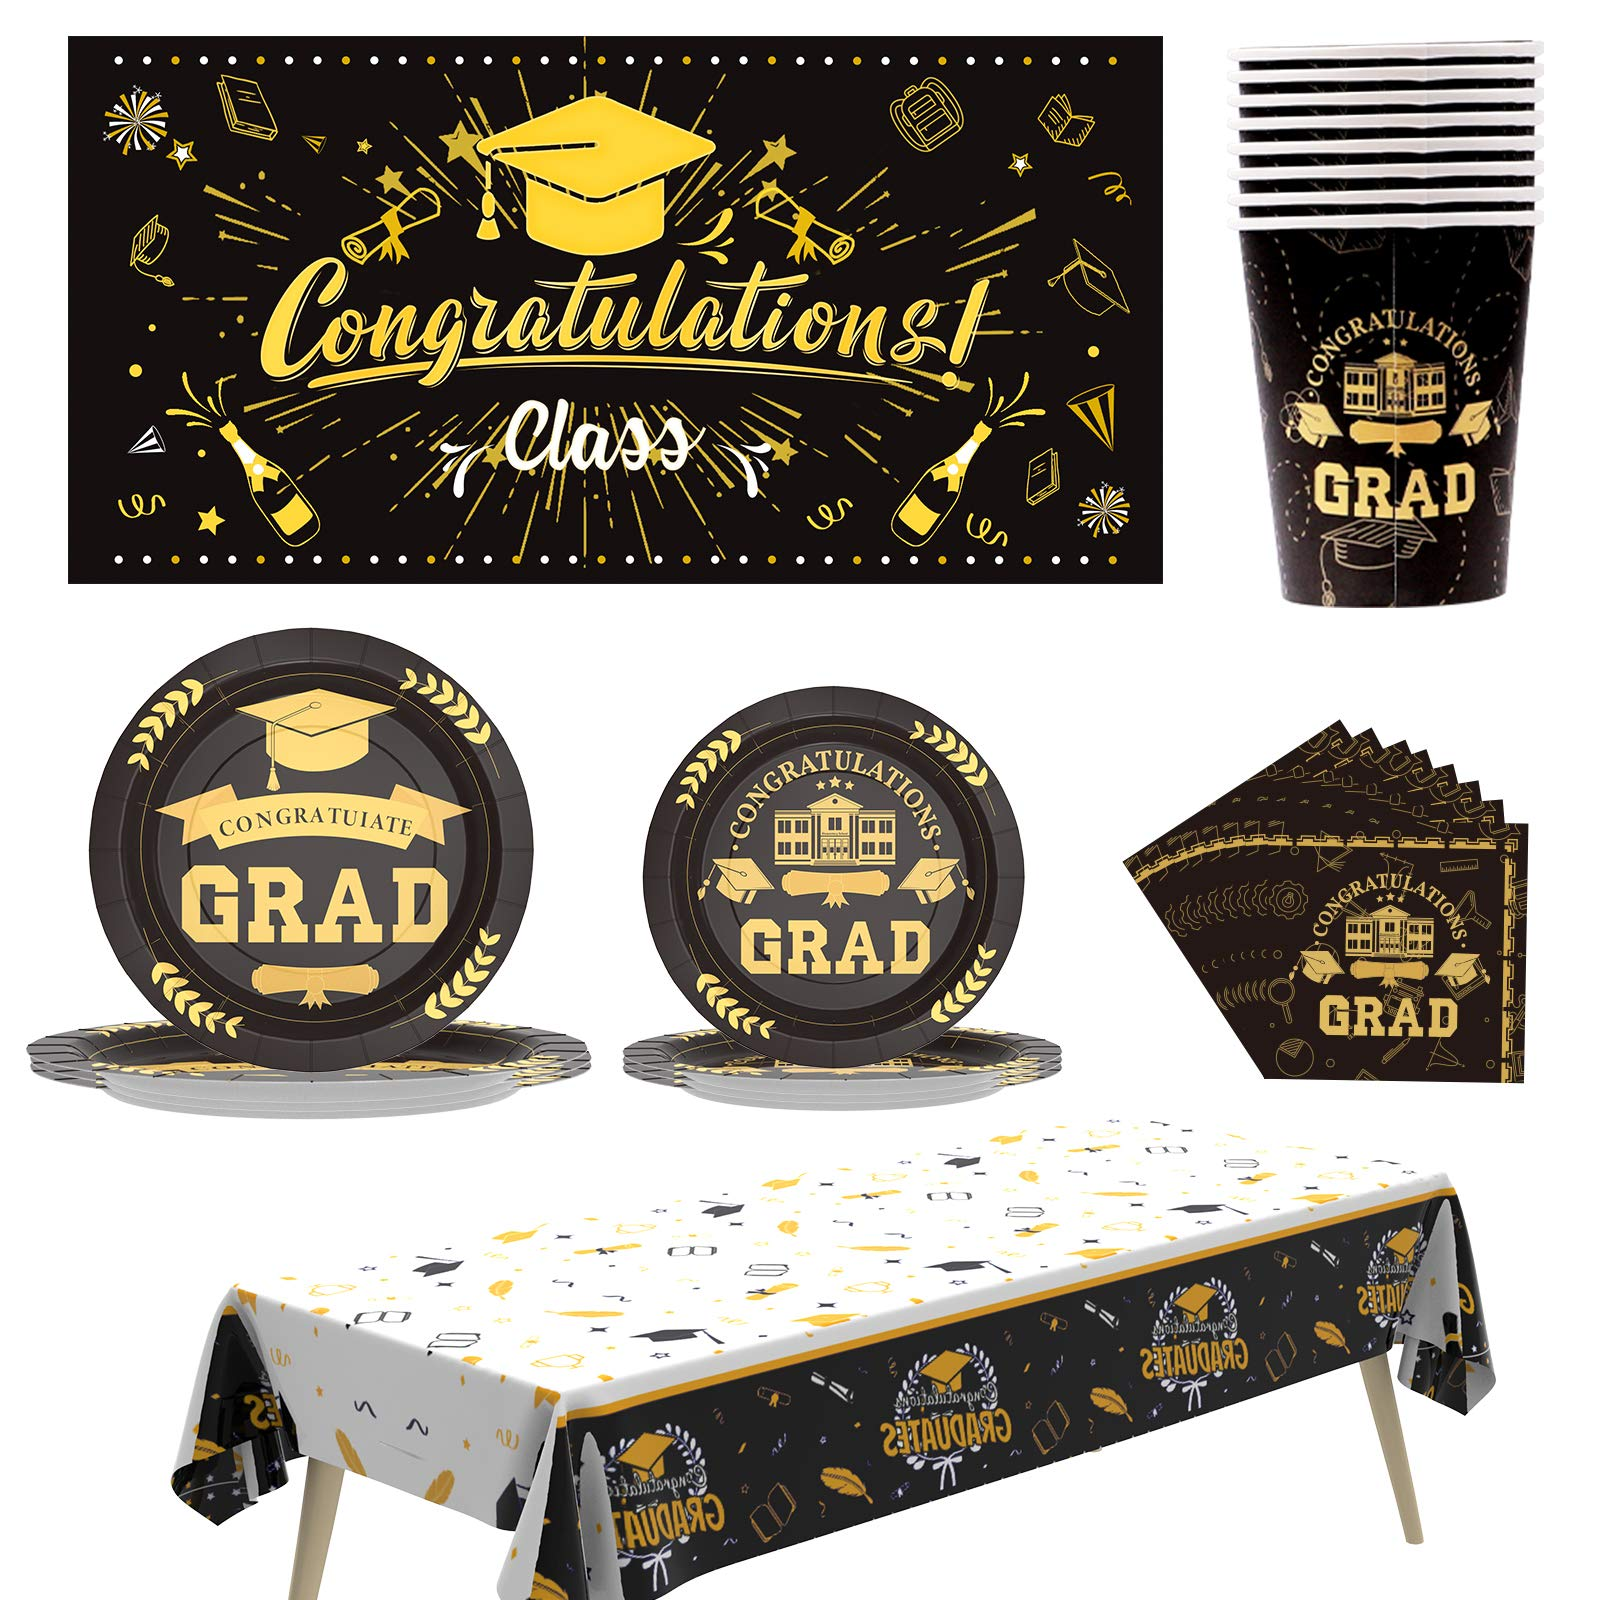 2021 Graduation Party Supplies for 20 People Bundle Includes Paper Oval Dinner Plates Dessert Plates /& Lunch Napkins Plus 2021 Glitter Table Centerpiece Well Done Congrats Grad 2021 Design